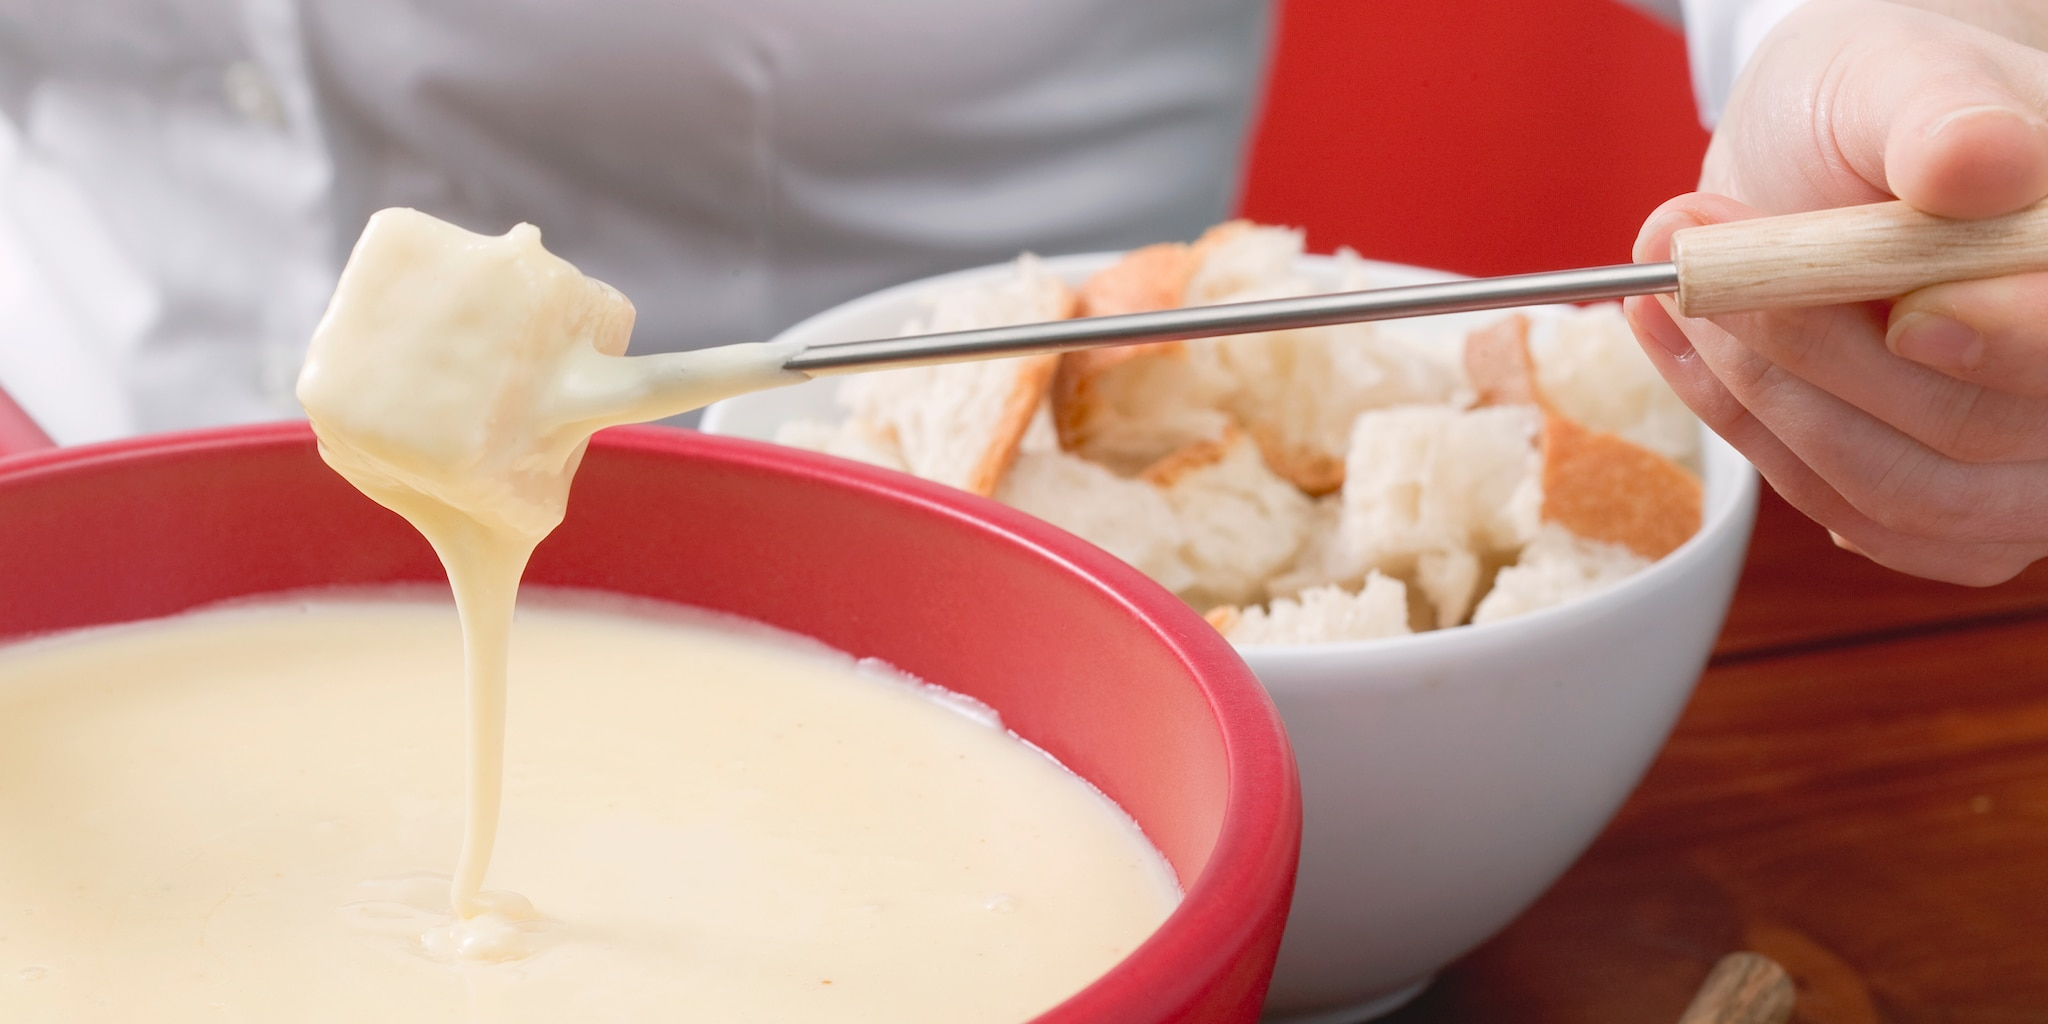 Enjoy fondue making on the Italy vacation